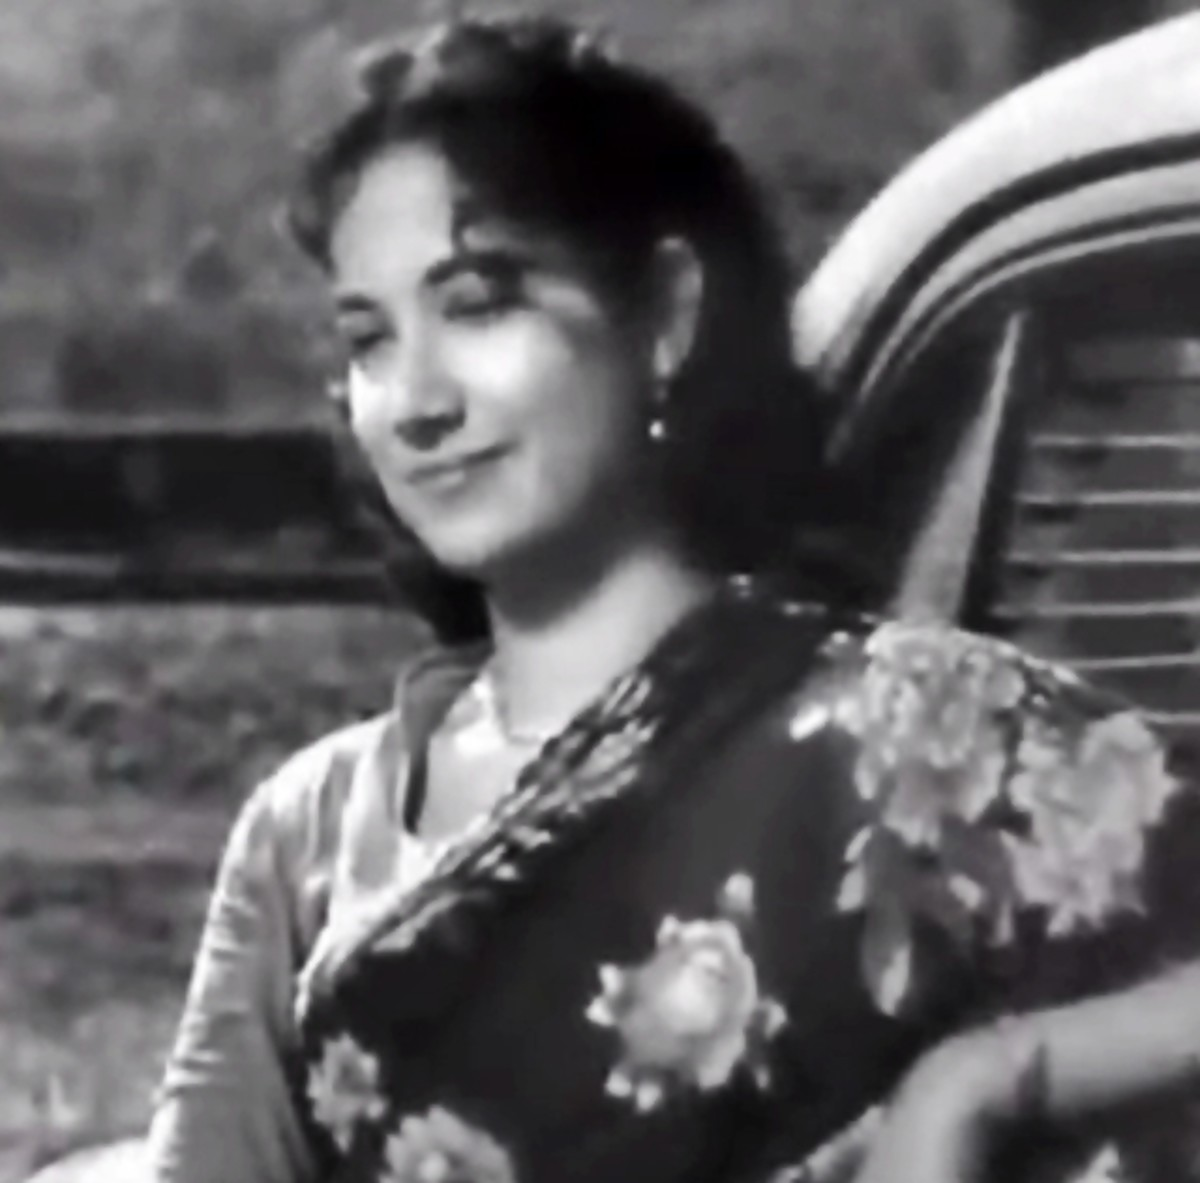 Shakila in the movie CID - One of the most melodious songs of Shamshad Begum, full of energy